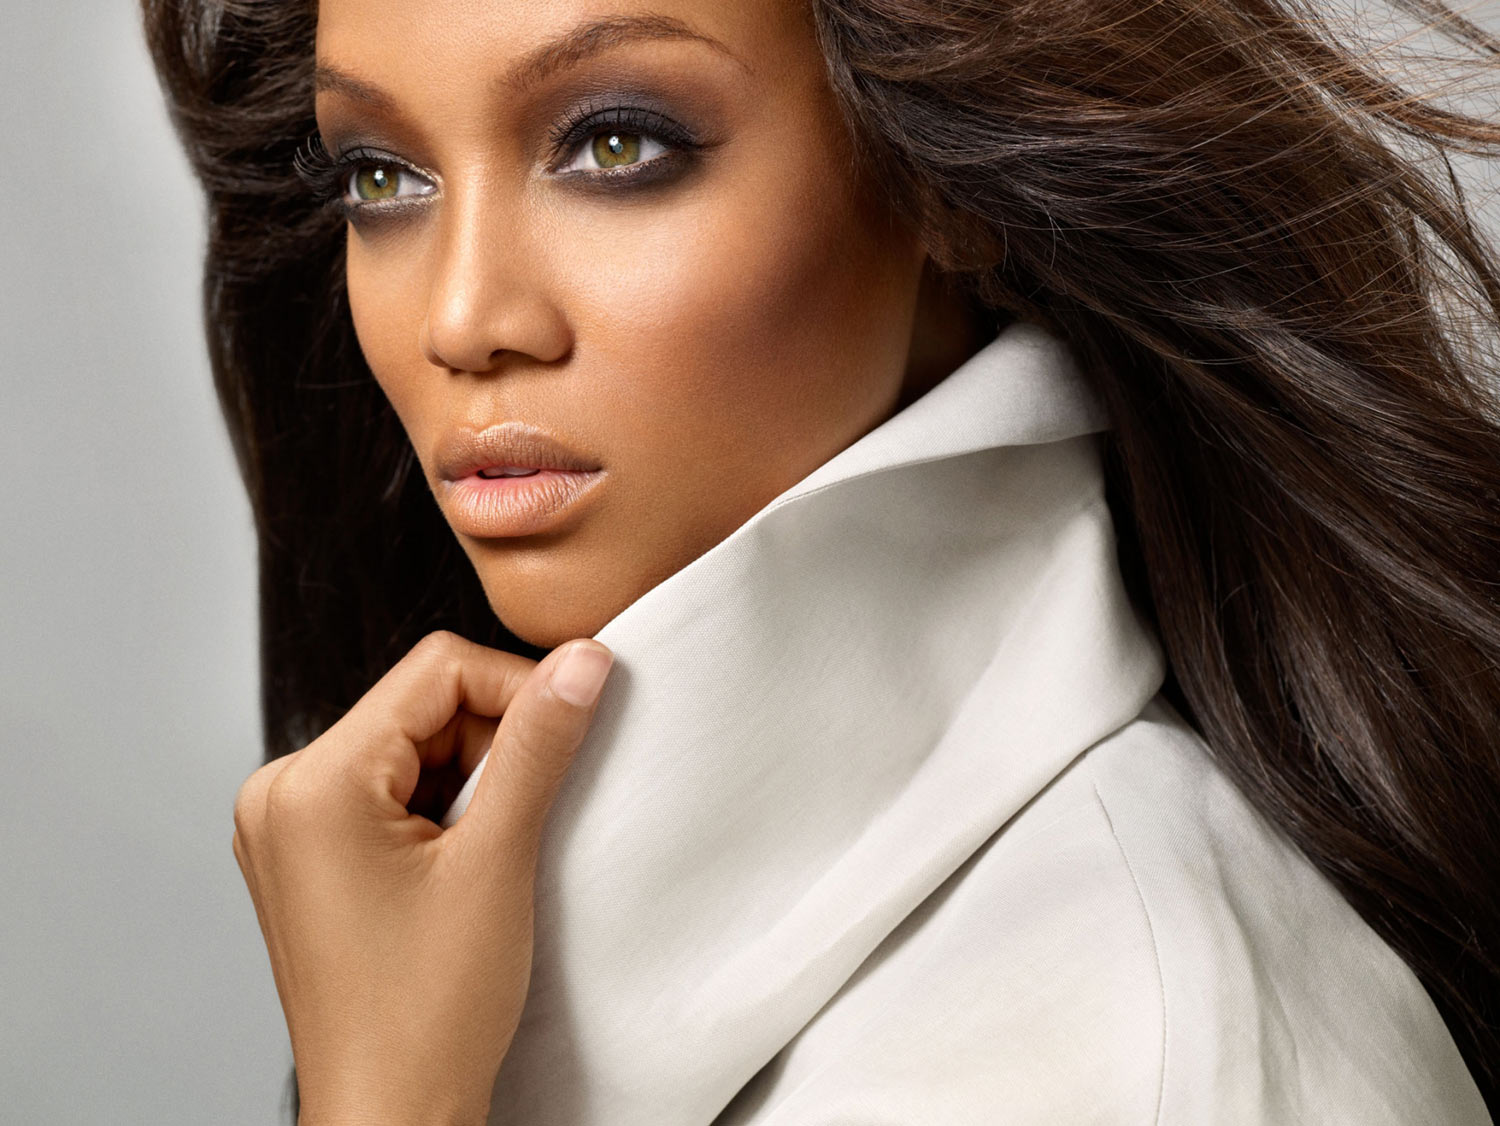 HOLLYWOOD ALL STARS: Tyra Banks Profile, Bio And Pictures